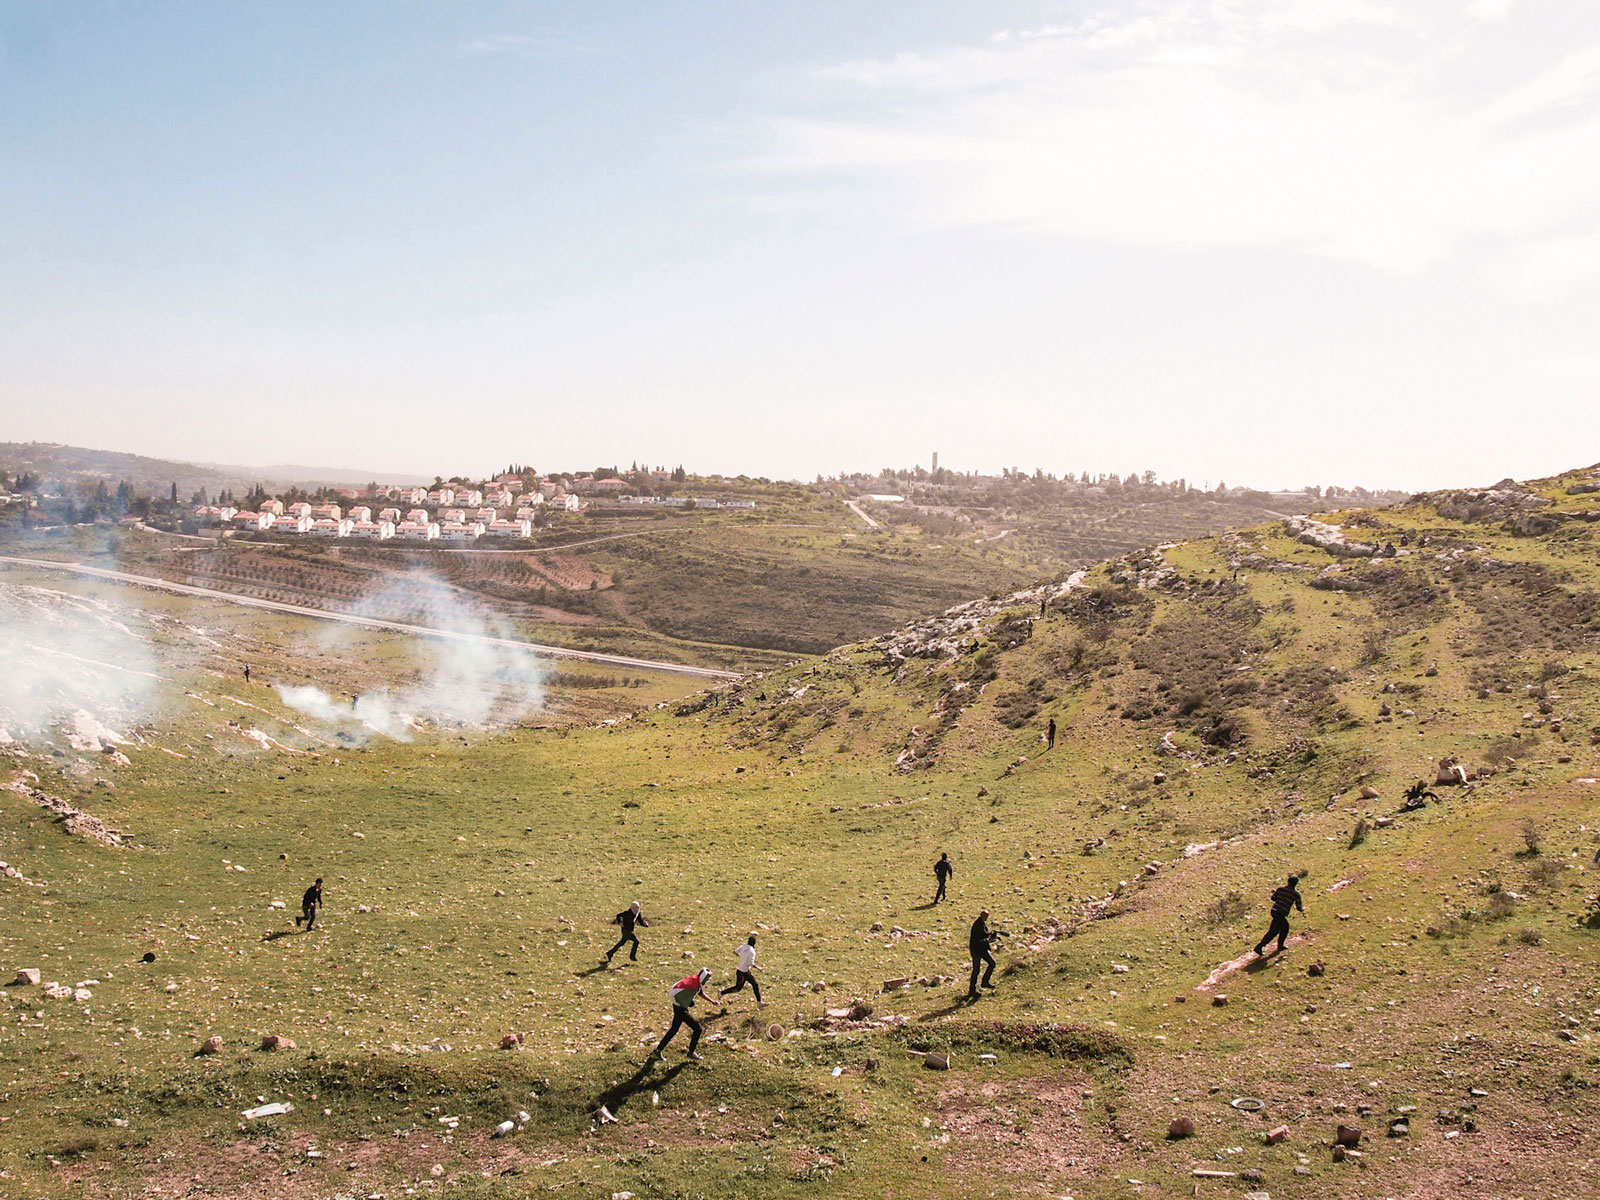 Palestinian protestors running from tear gas fired by Israeli soldiers at a weekly protest against the Israeli occupation, West Bank, Nabi Saleh, 2013